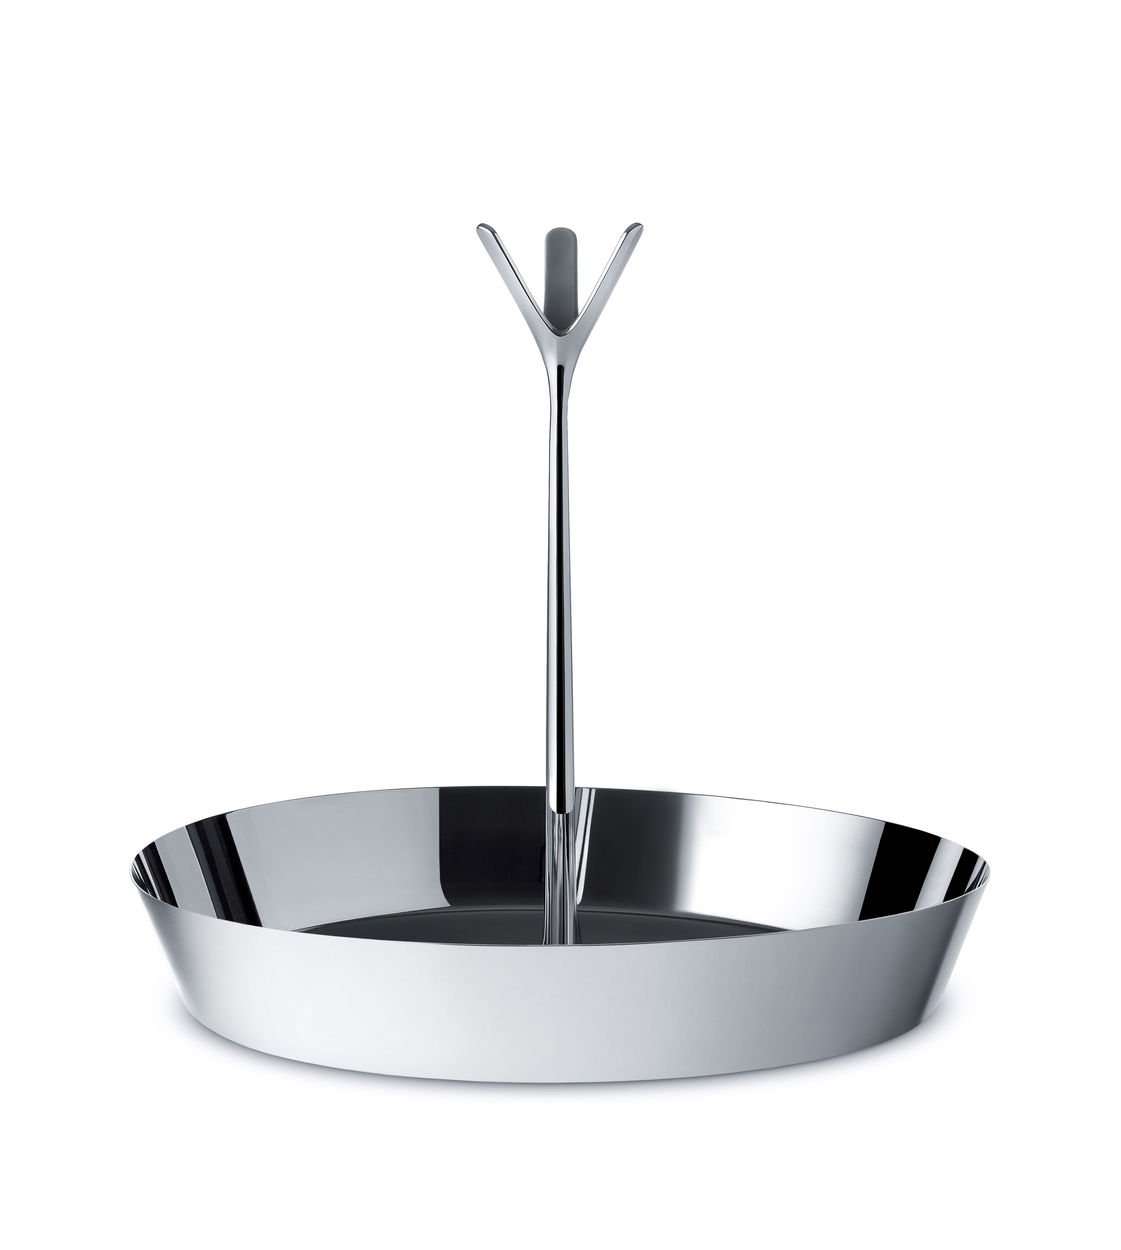 Alessi Tutti Frutti Fruit Holder in 18/10 Mirror Polished, Stainless Steel, Silver, 29.5 x 29.5 x 30.5 cm GIA19